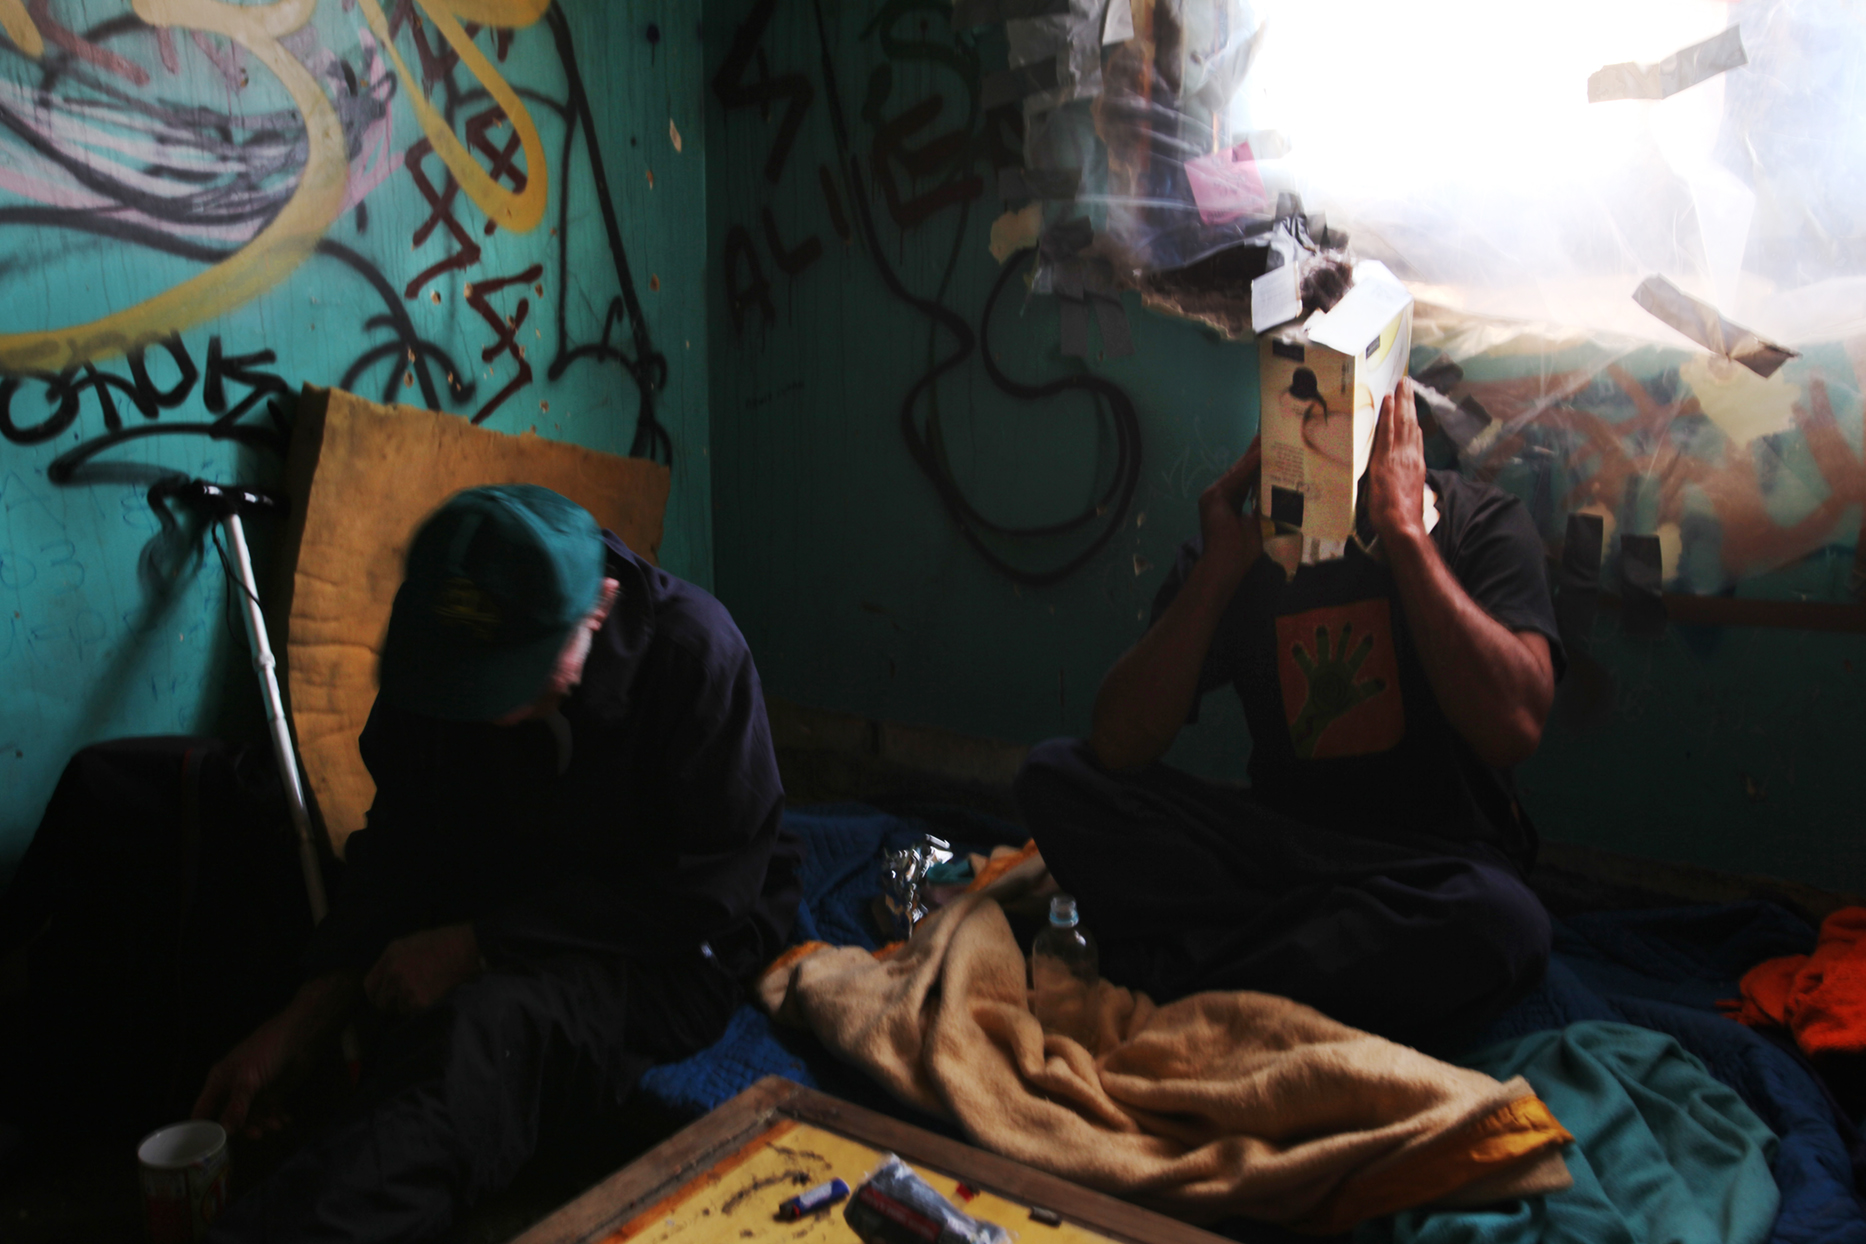 Summary: These pictures are a reportage of the daily struggle of life of alcoholic and homeless people who live in Newcastle, Australia. The lives of alcoholics in Newcastle, show patterns of structured behavior with territorial and social layers. They have a distinctive group identity and a moral order is present. Their subculture is complex with strains of non-patriarchal and patriarchal relations combined with little tolerance towards outside groups. The moral code of the alcoholics subculture may be a reaction to their histories of abuse but is also conservative in reproducing aspects of the culture that they resist. The social networks and in some cases the deep seated friendships made on the street provide a force of survival.